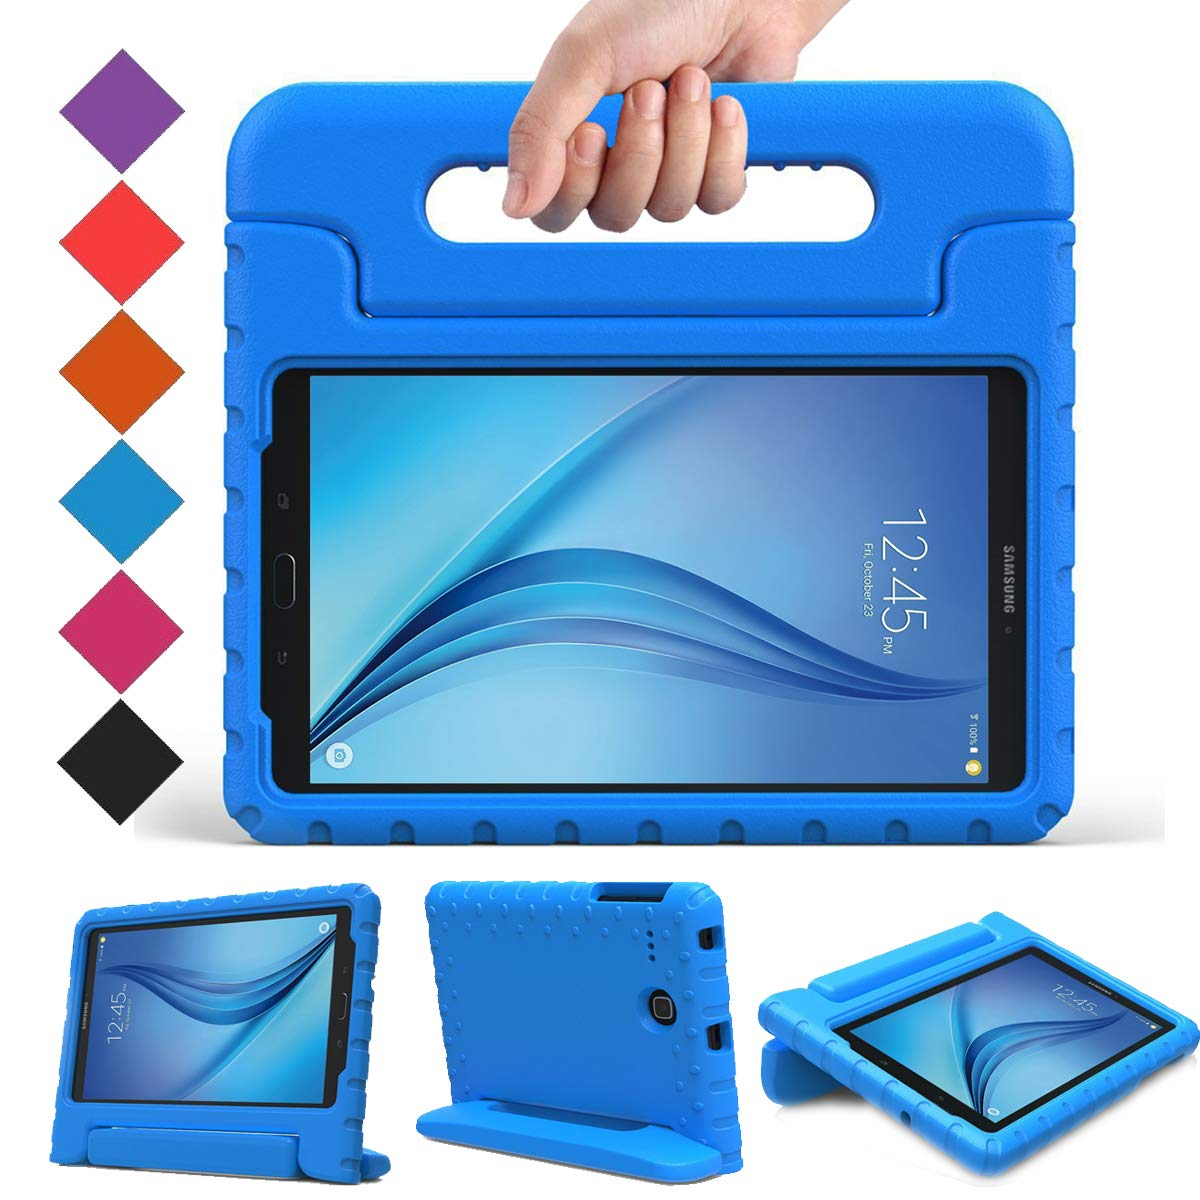 BMOUO Kids Case for Samsung Galaxy Tab E 8.0 inch - EVA Shockproof Case Light Weight Kids Case Super Protection Cover Handle Stand Case for Kids ...